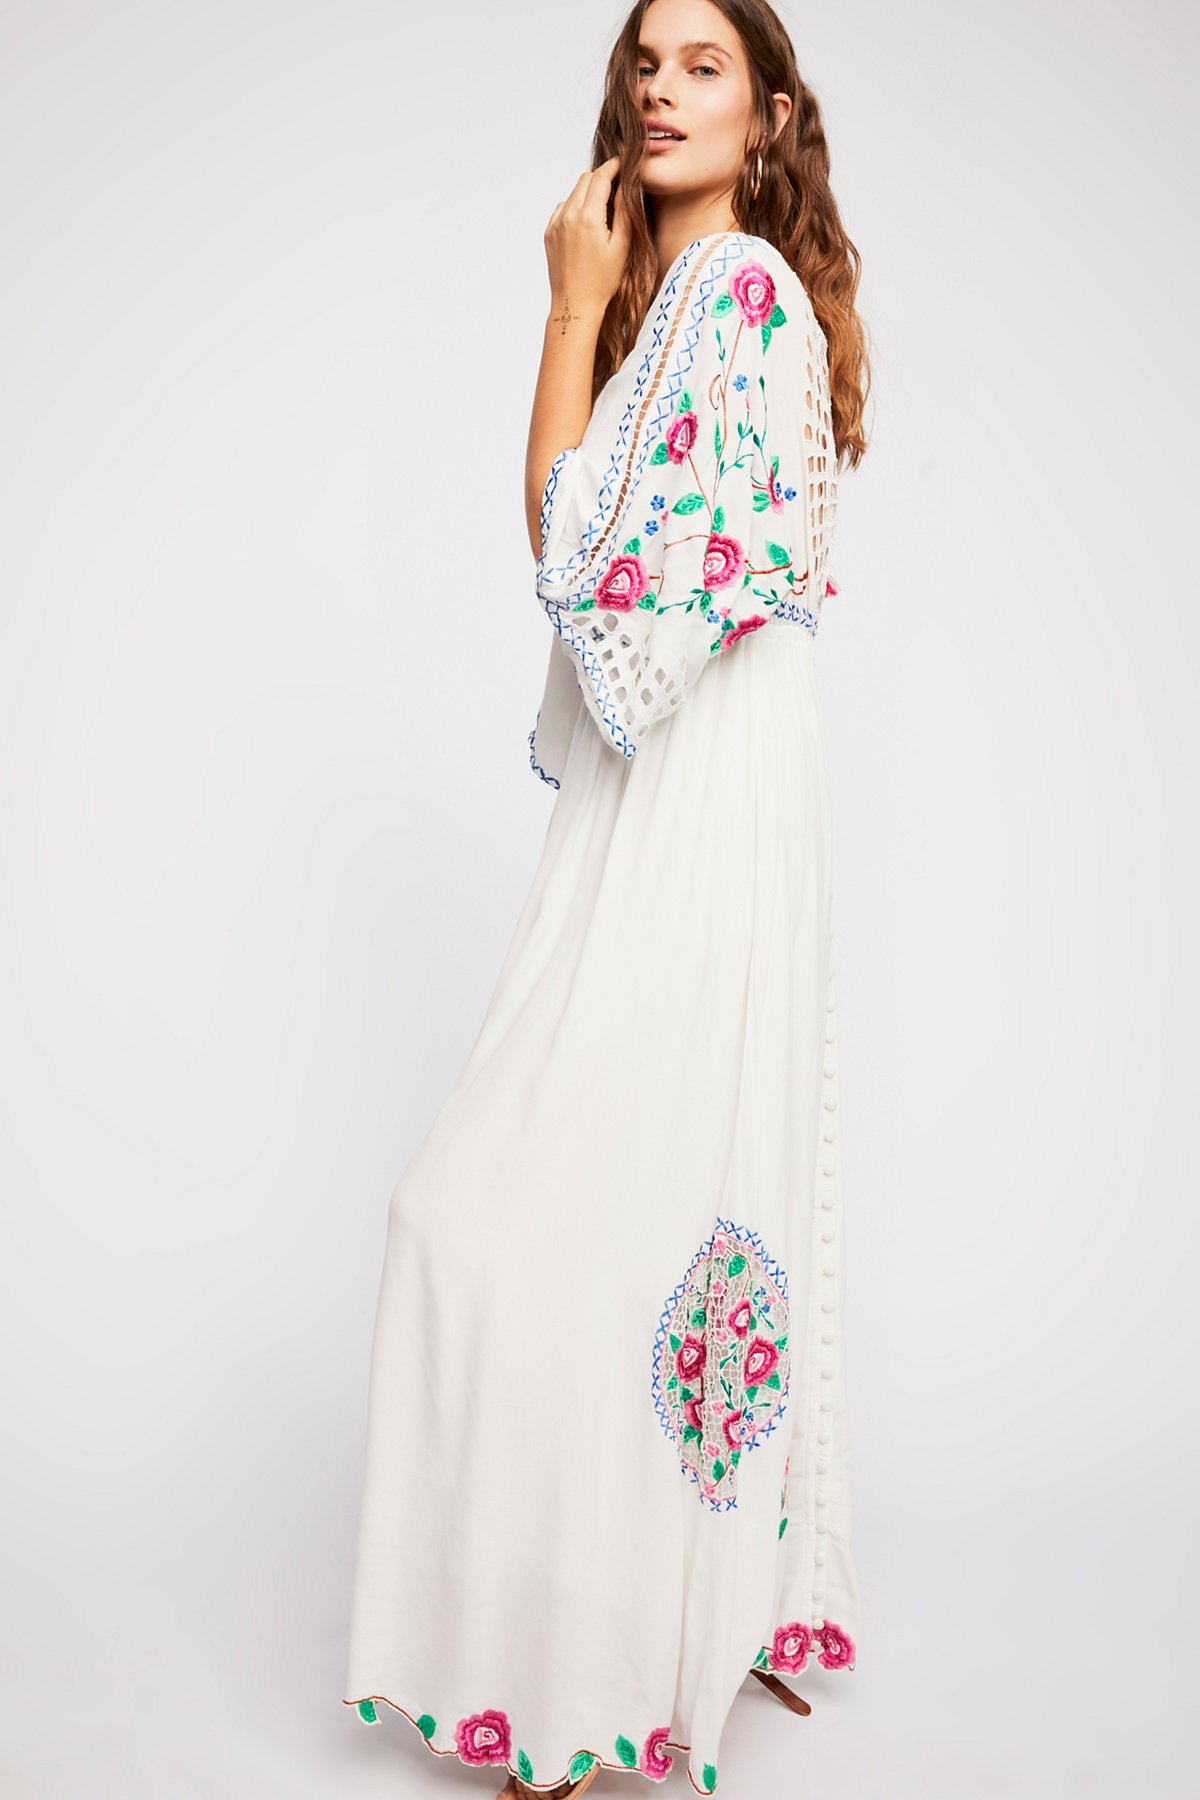 Is There Love On Mars Dress